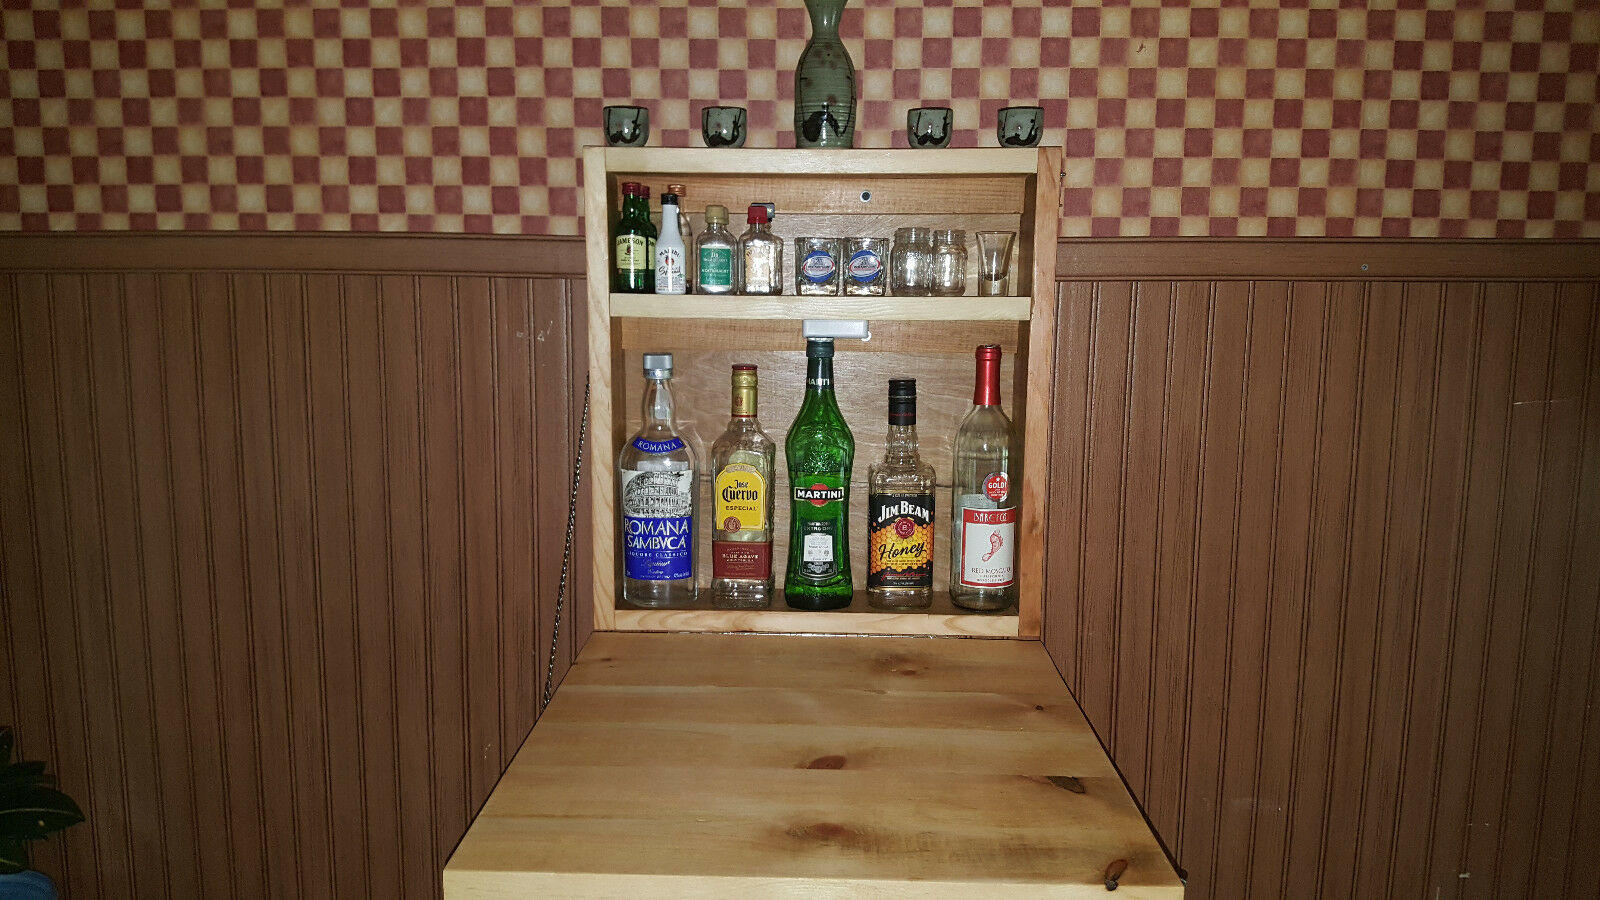 Rustique Murphy bar MAN CAVE liquor cabinet salle de jeux Replier Bar Mural